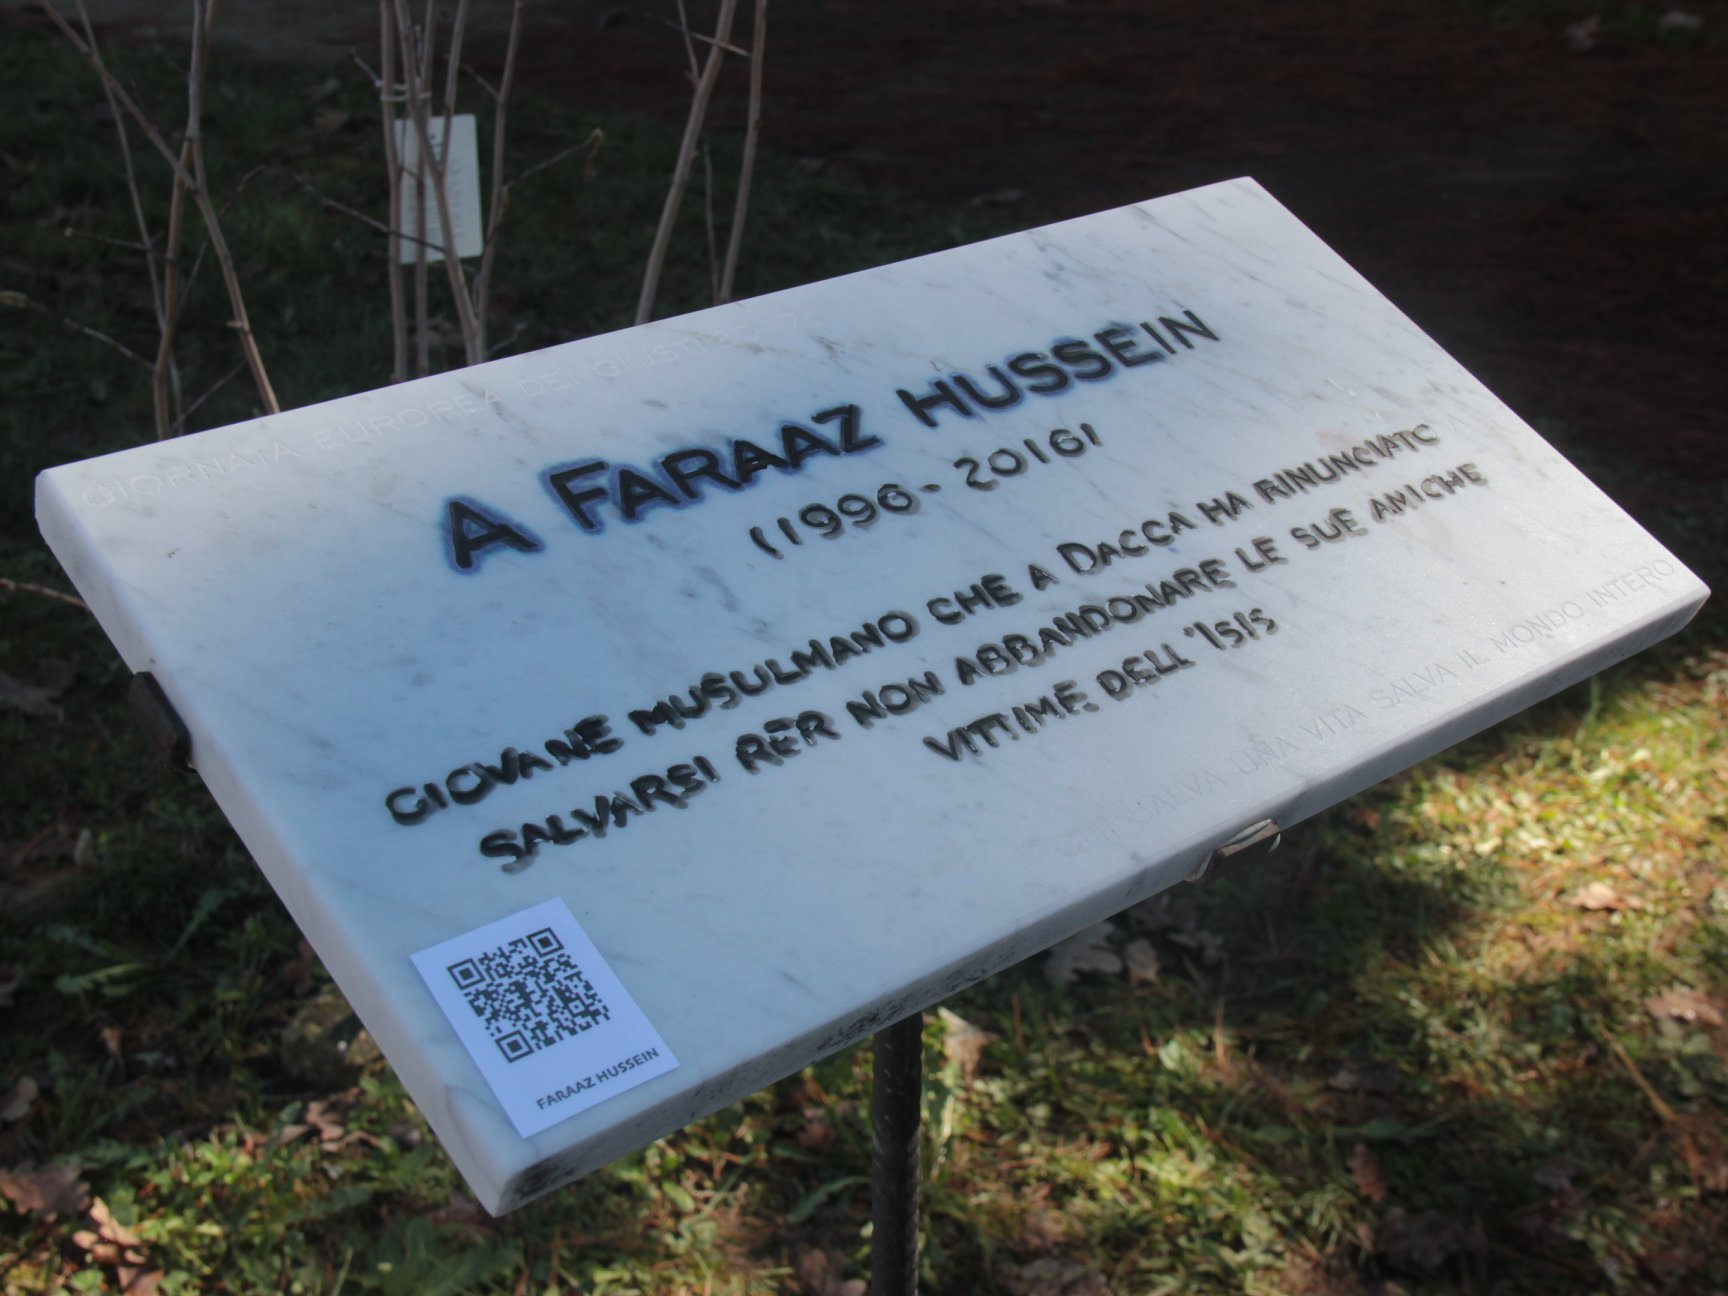 A plaque for Faraaz Hussein in Vercelli